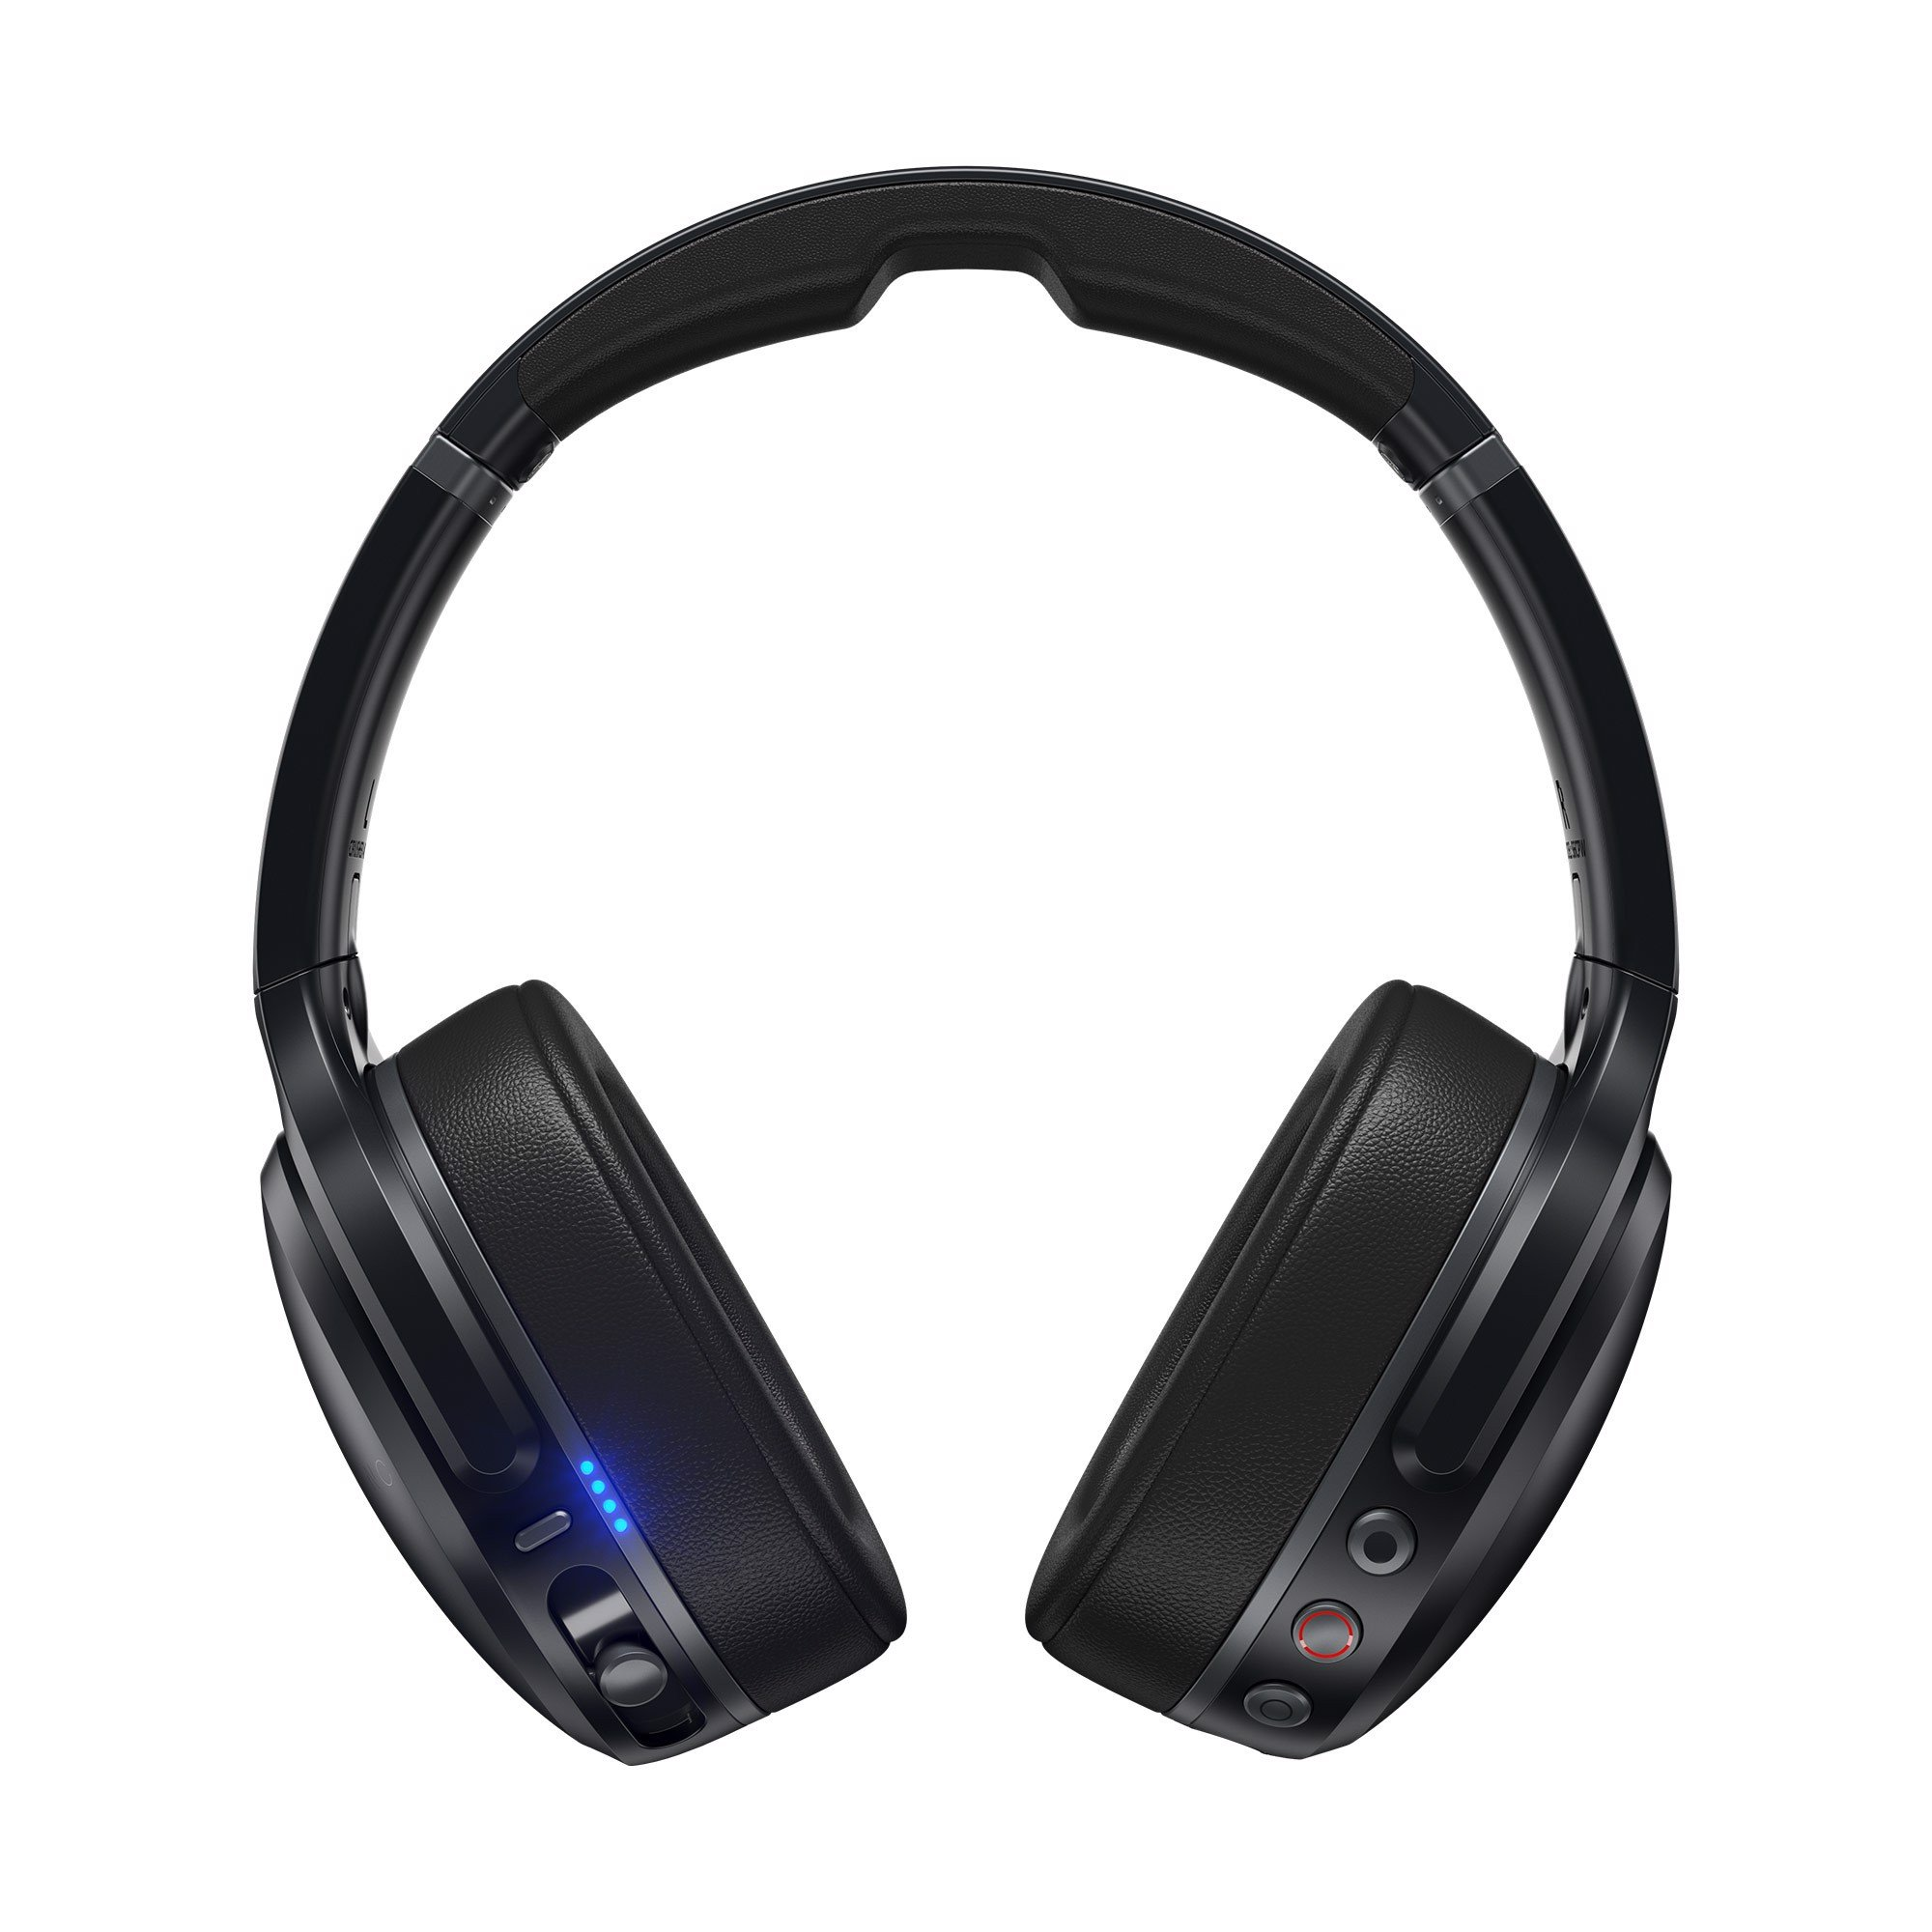 Tai Nghe Bluetooth Skullcandy Crusher ANC™ Personalized, Noise Canceling Wireless